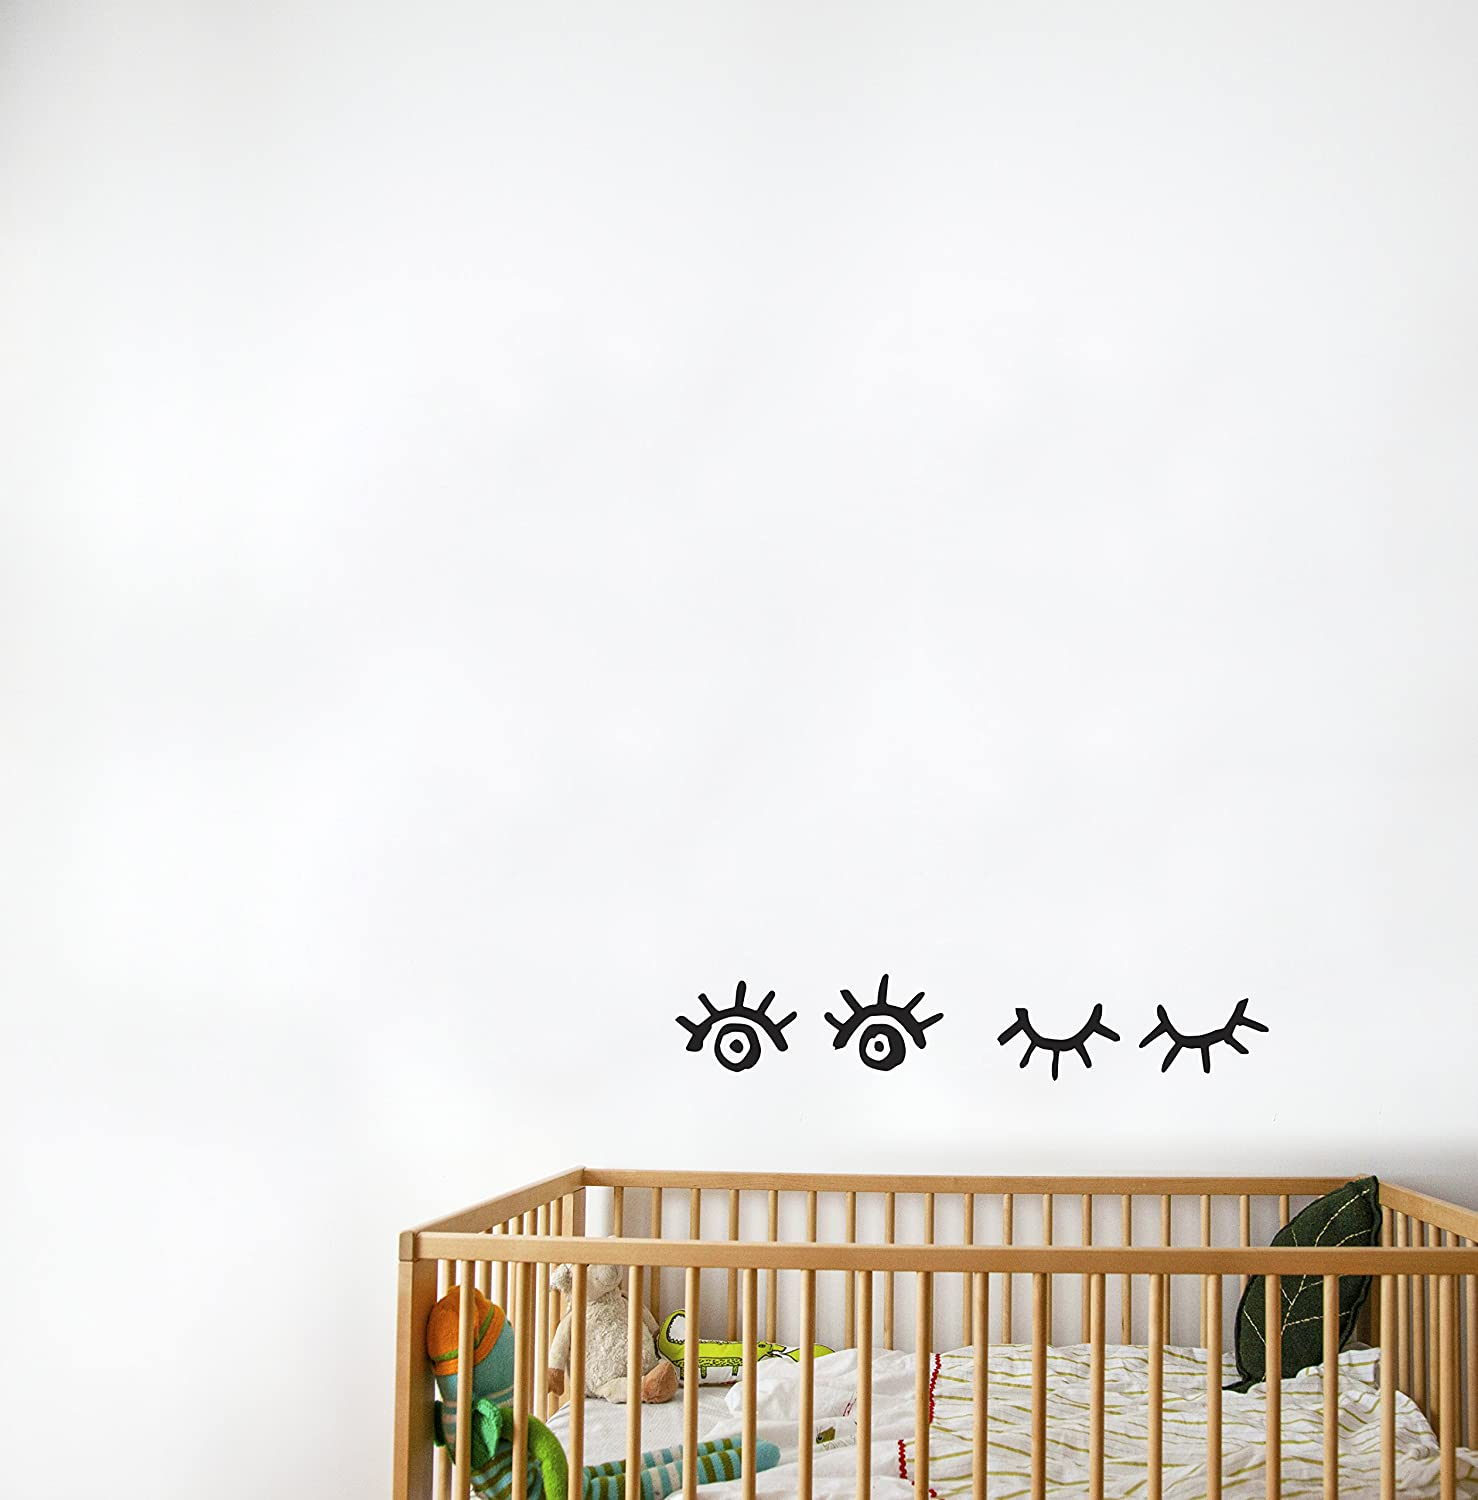 AdzifKeeping an Eye on You Wall Decals Multicolored